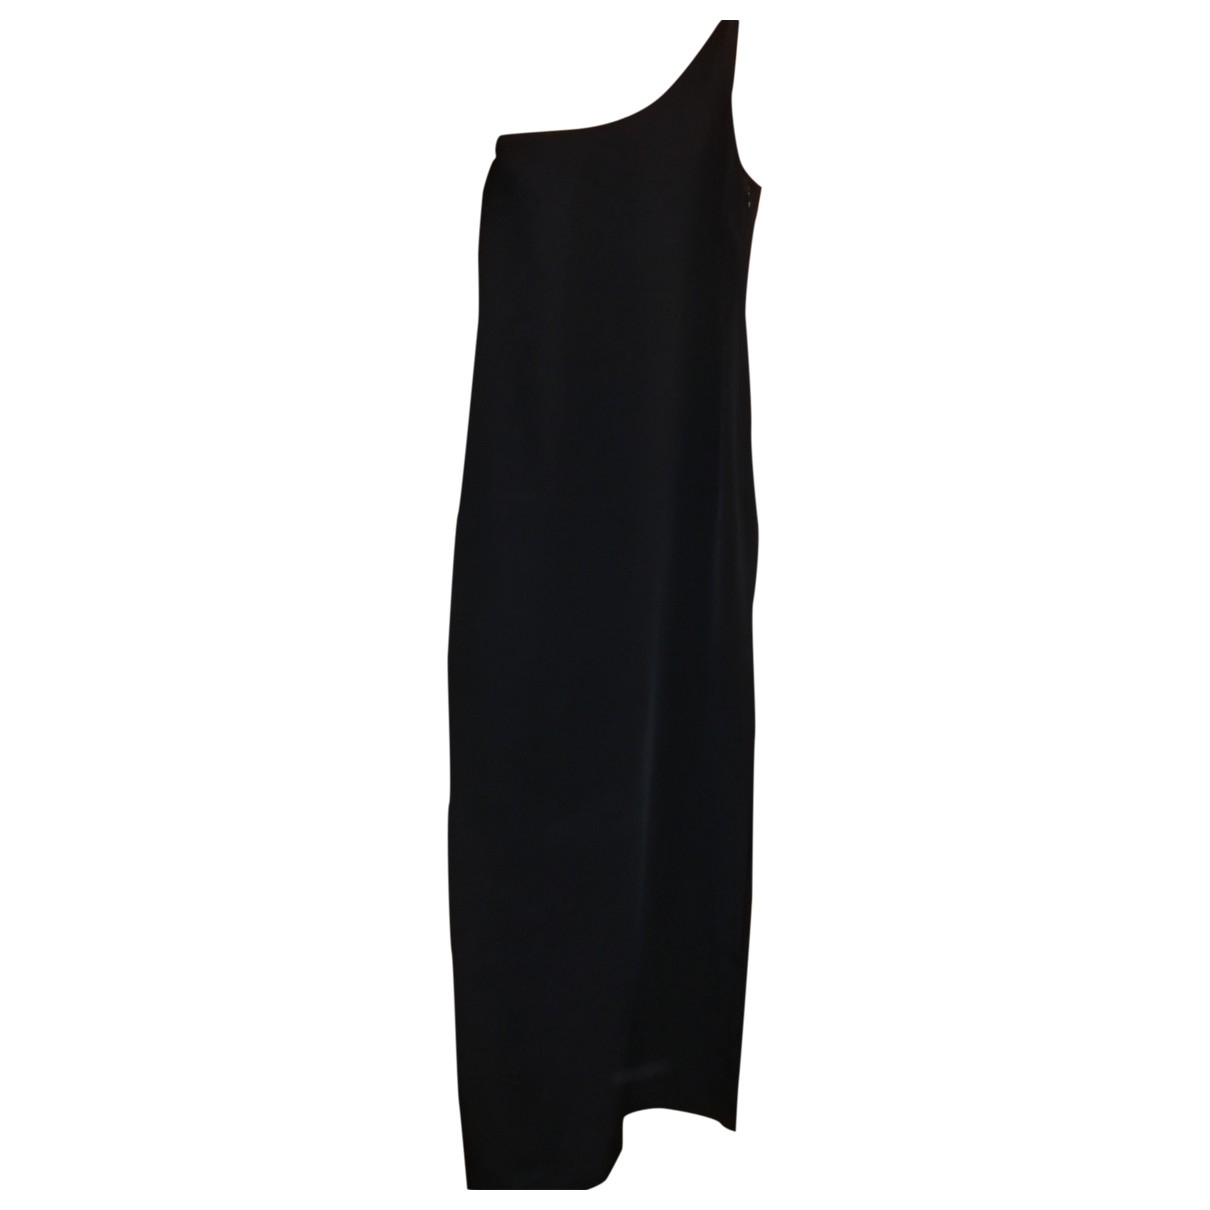 Yves Saint Laurent \N Kleid in  Schwarz Viskose